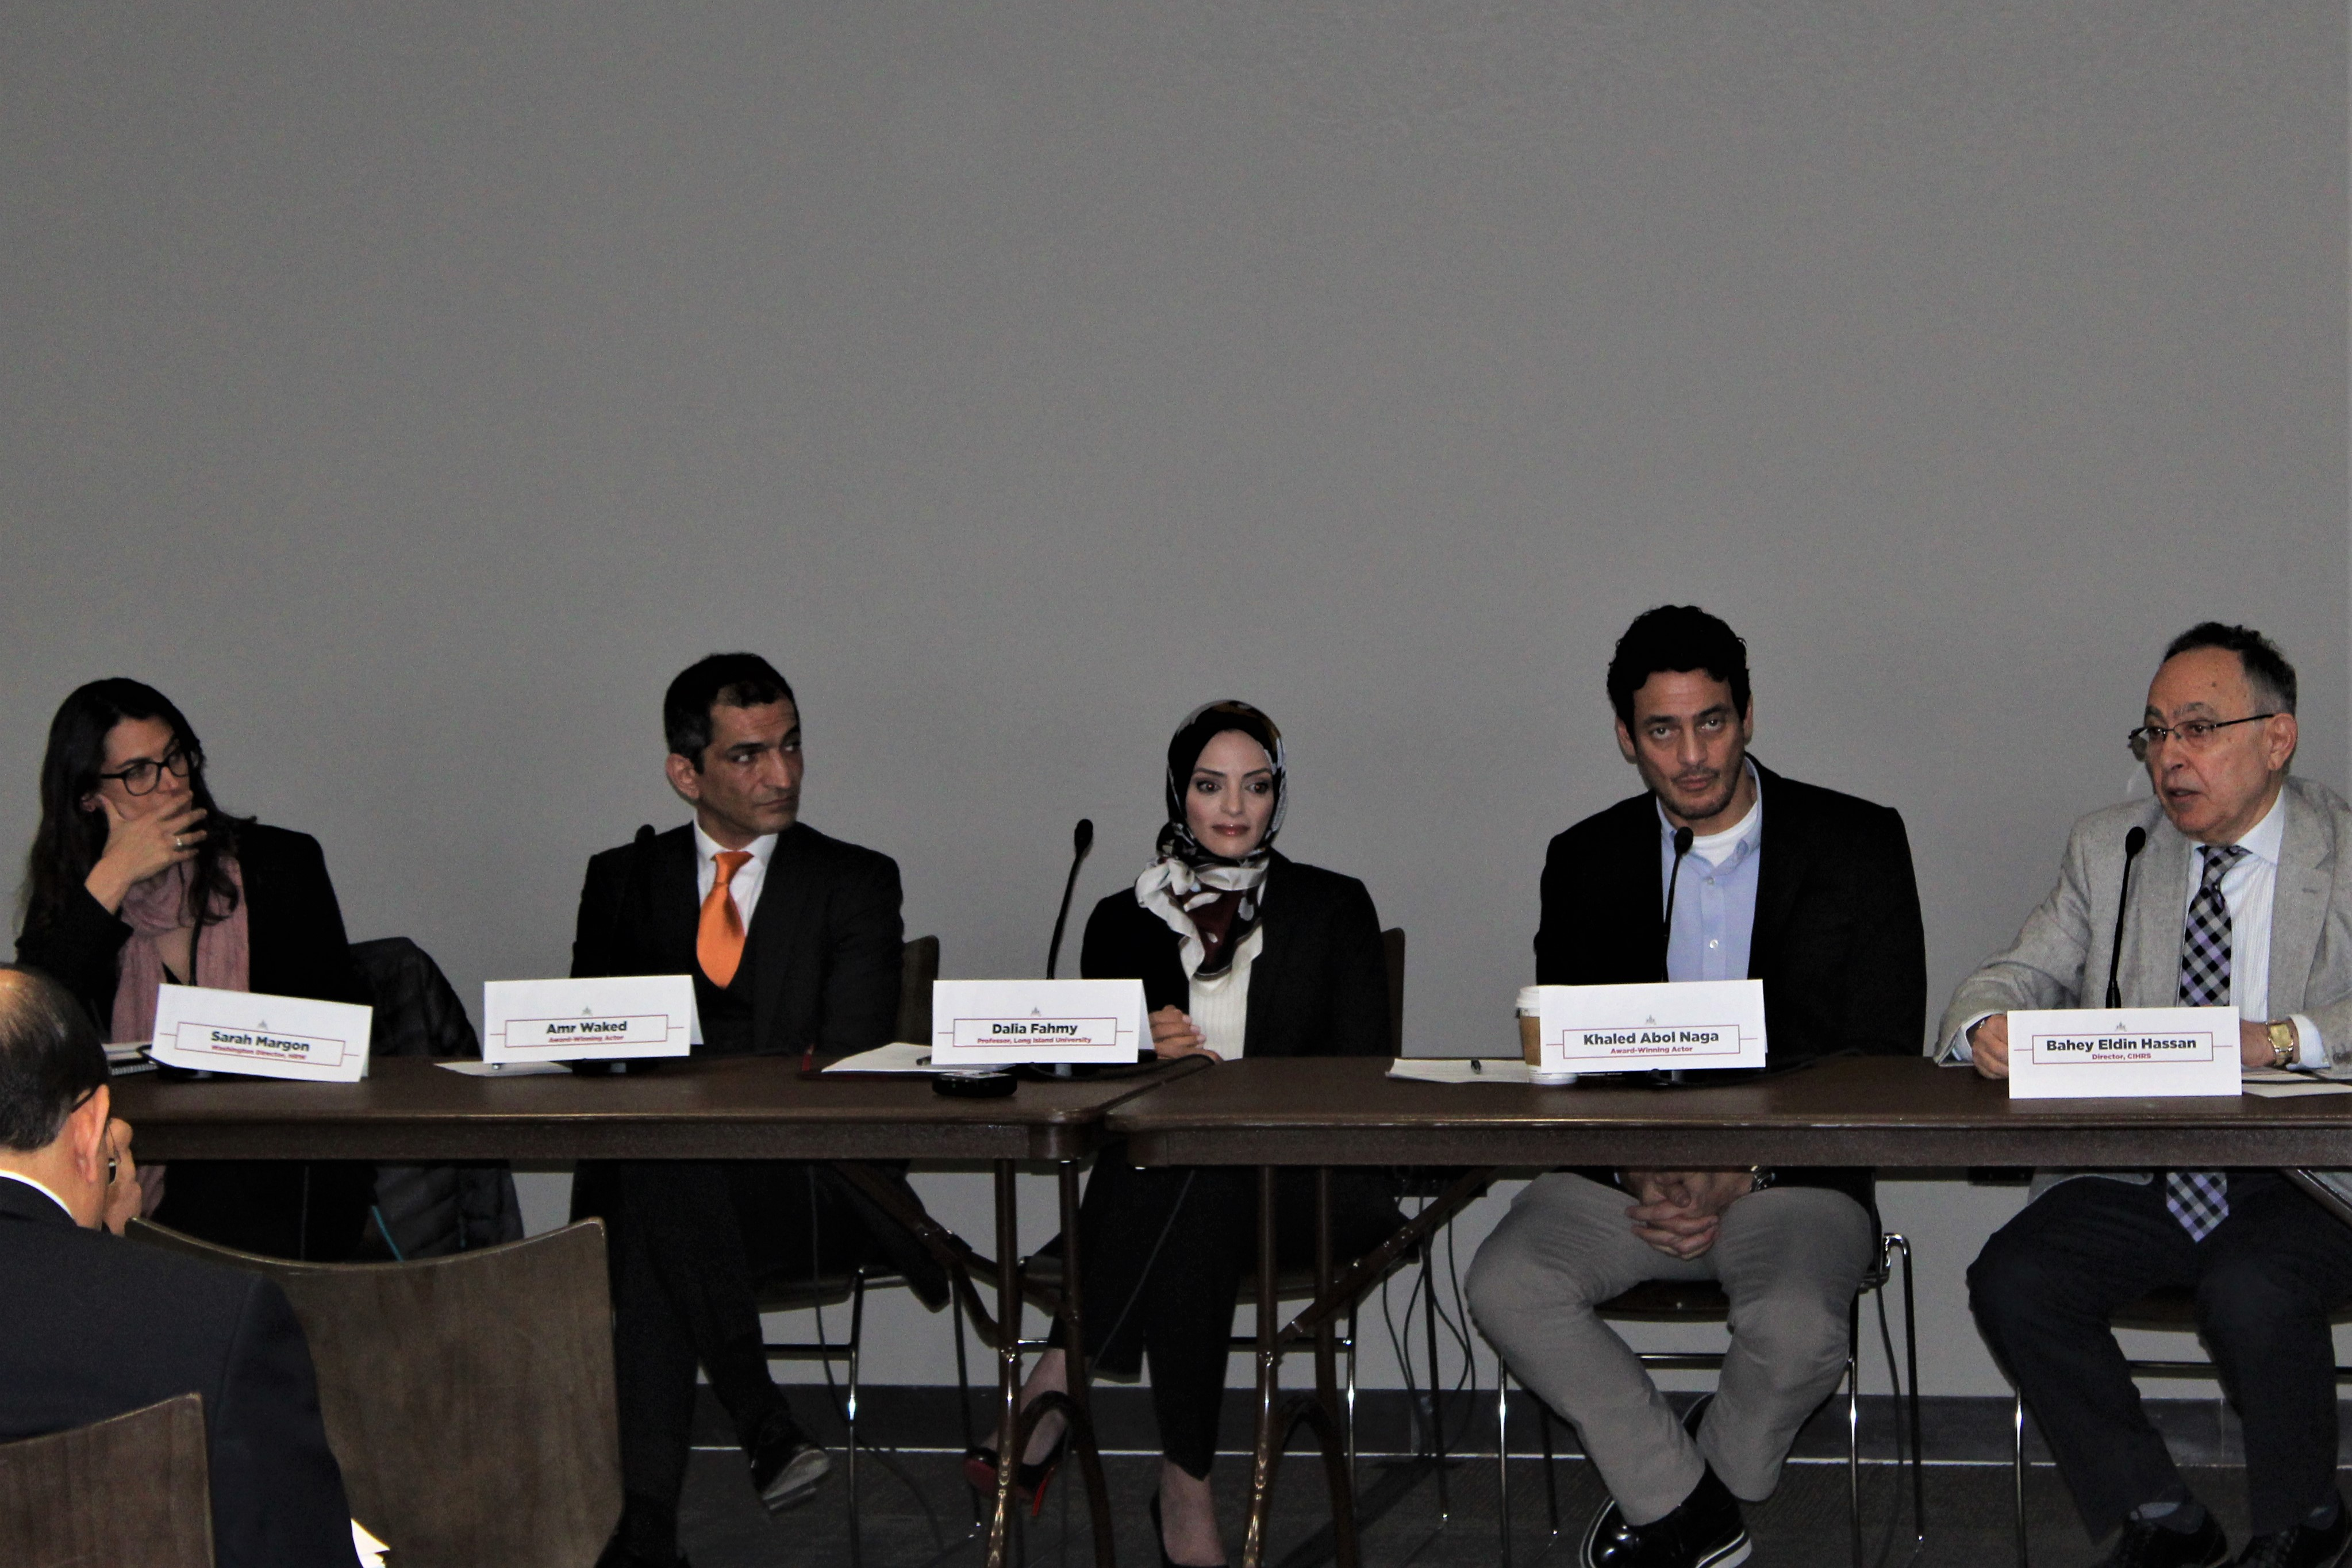 Amr Waked, second left, and Khaled Abol Naga, second right, appear on a panel on human rights in Washington in March (MEE/Ali Harb)